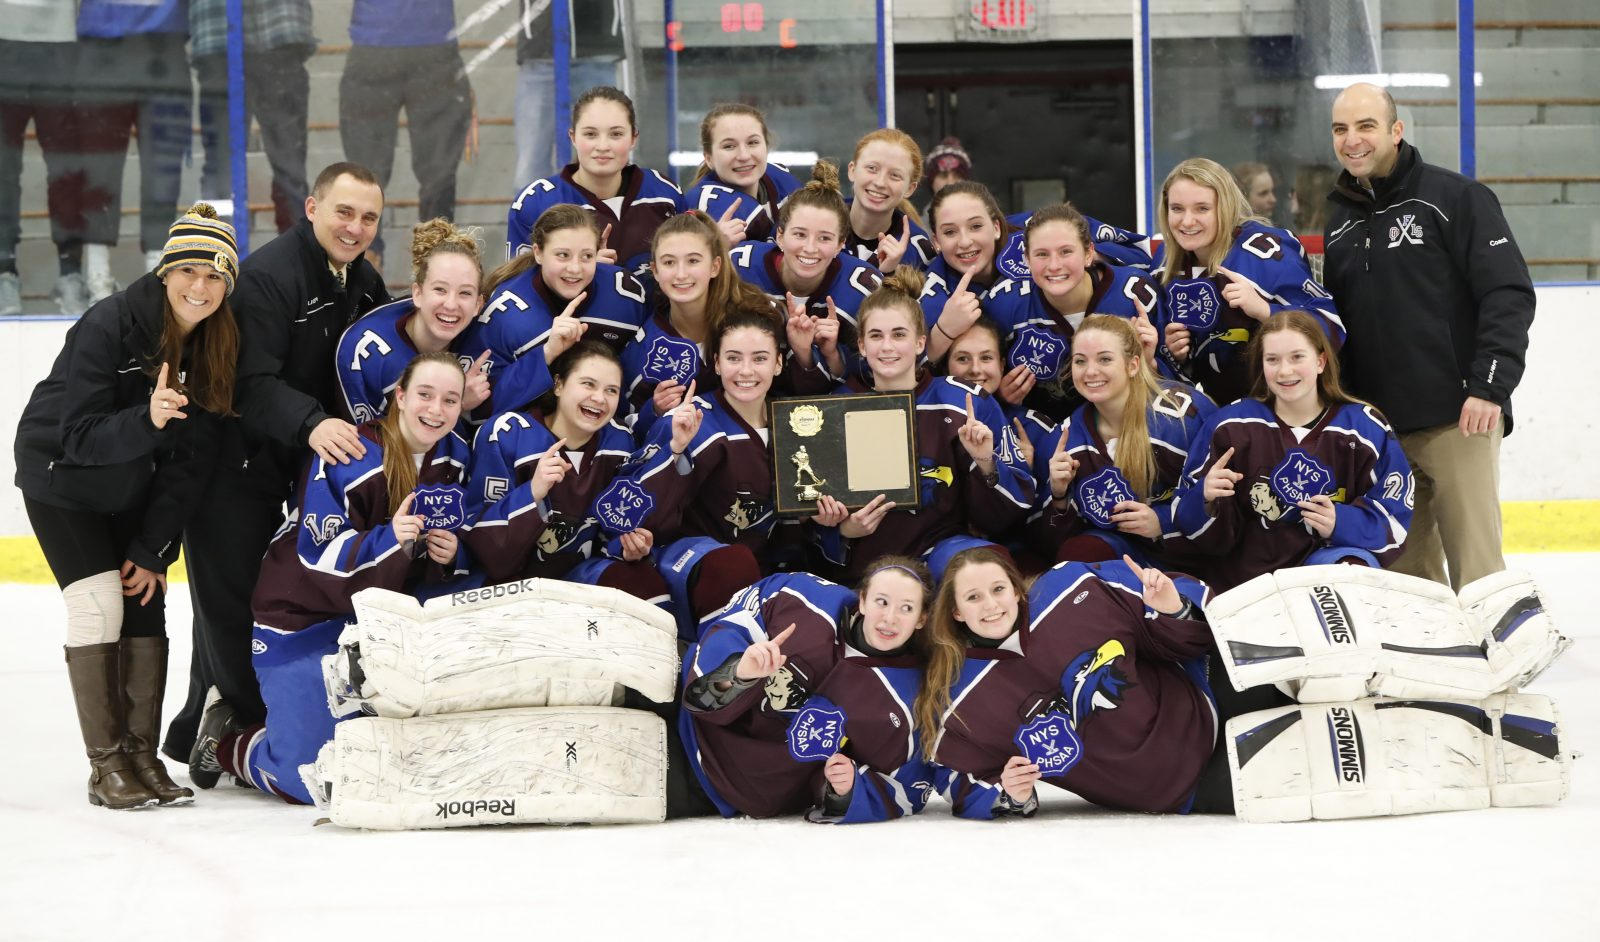 Frontier/Lancaster/Orchard Park celebrates after defeating Kenmore/GI, 3-2, for the Section VI title. (Harry Scull Jr./Buffalo News)